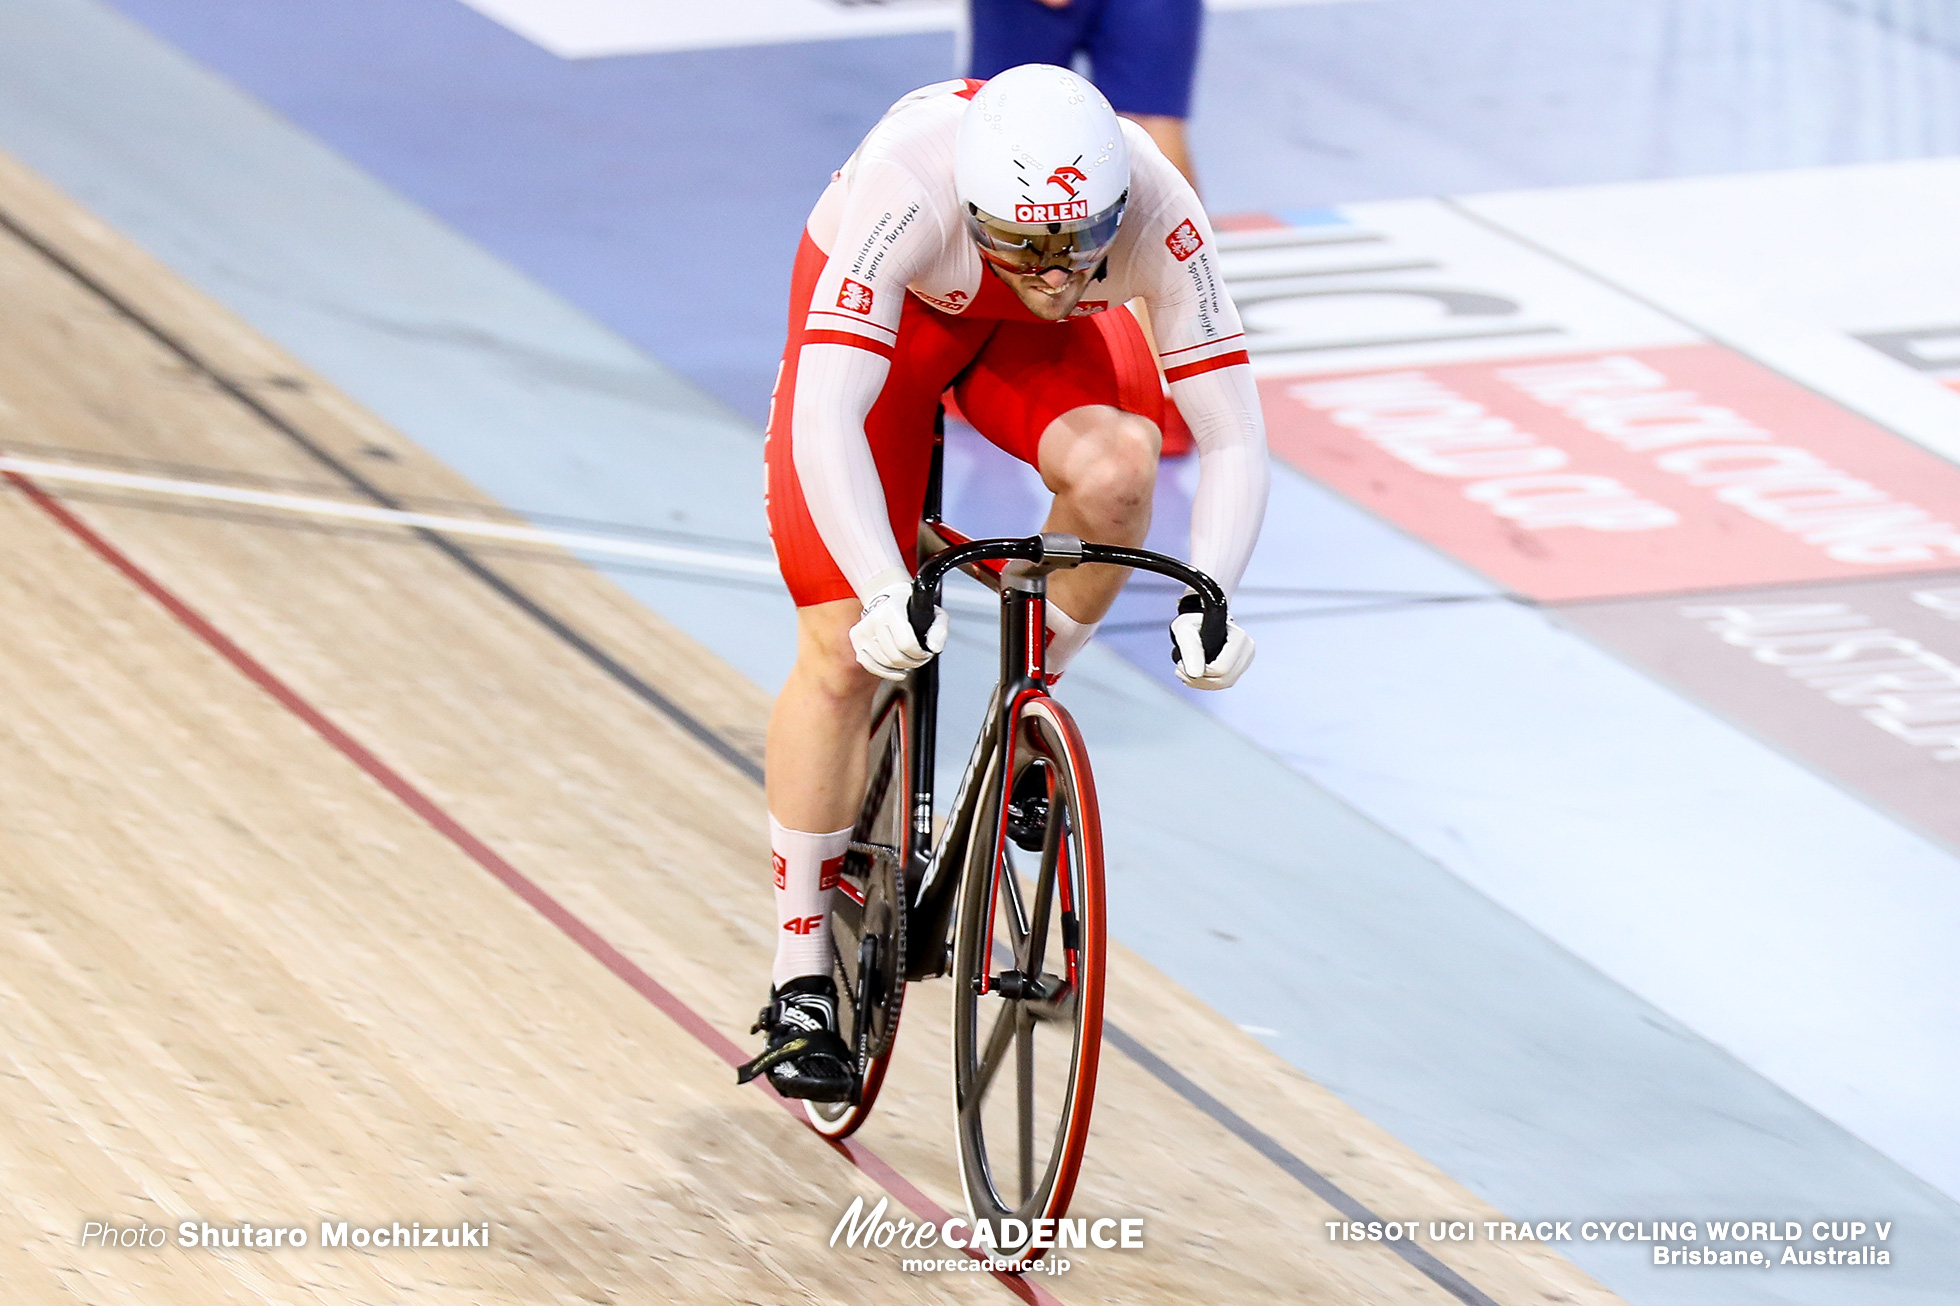 Final / Men's Sprint / TISSOT UCI TRACK CYCLING WORLD CUP V, Brisbane, Australia